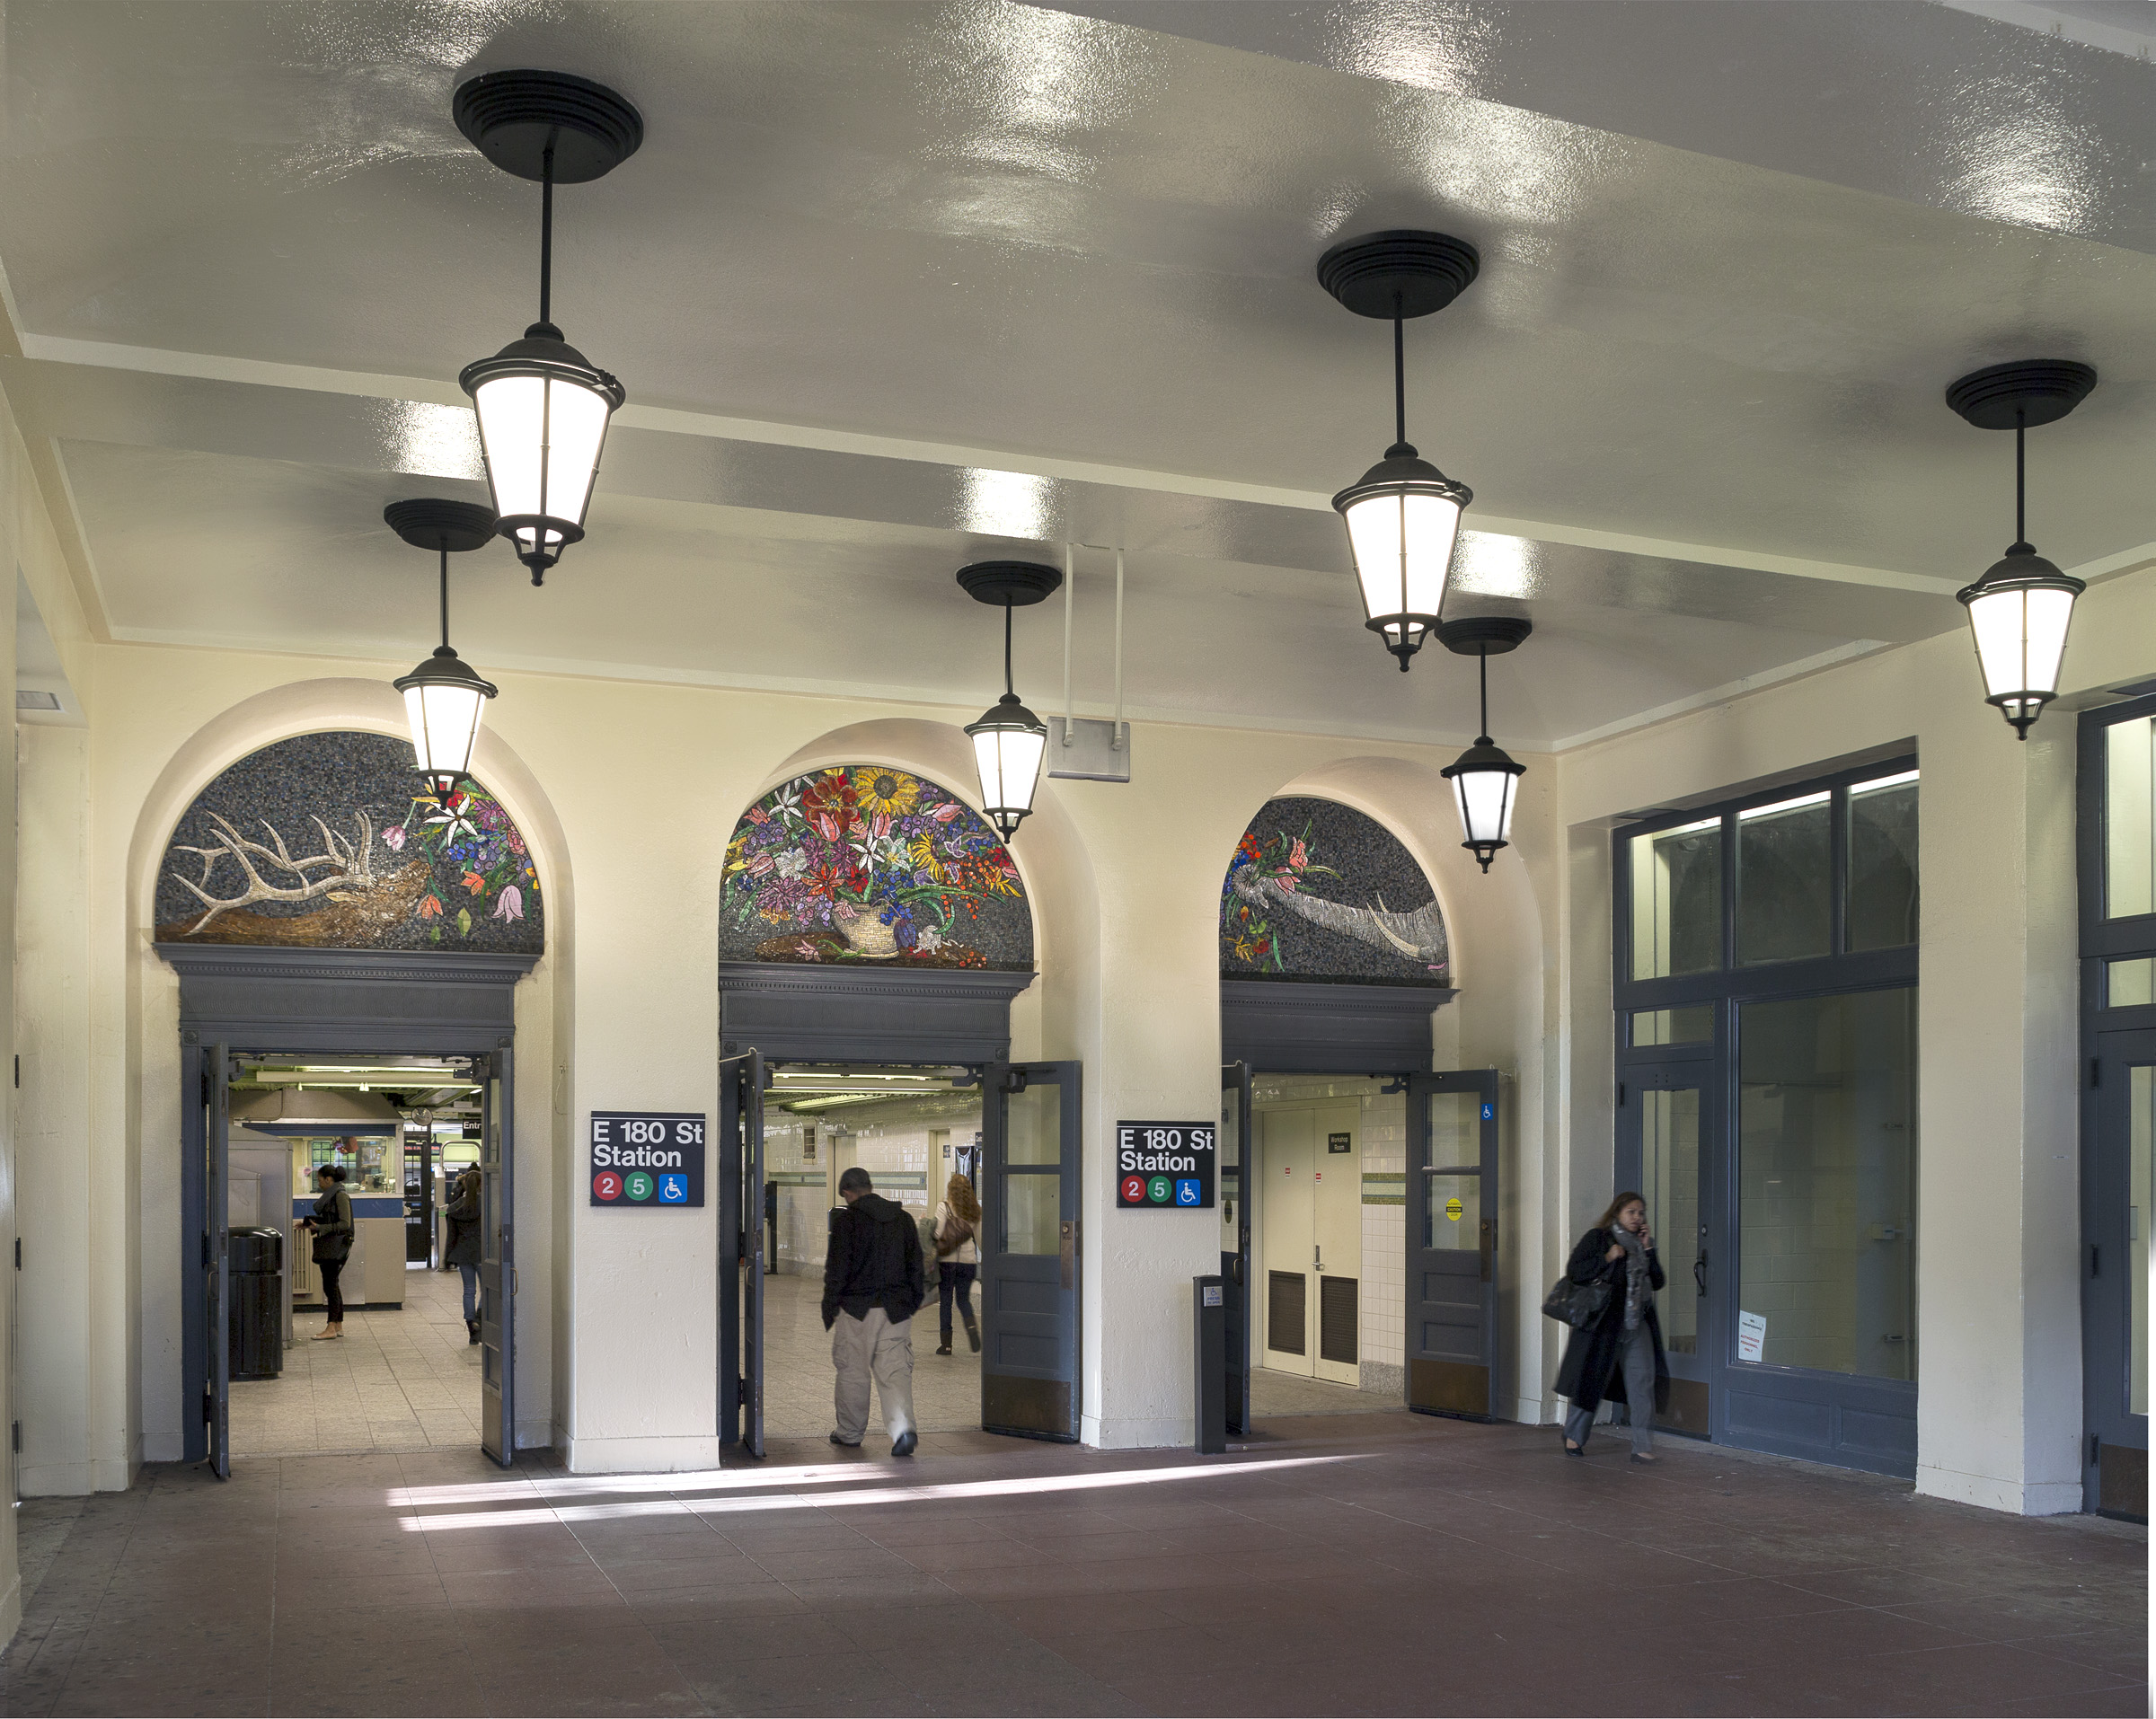 East 180th Street Station Lhparchitects